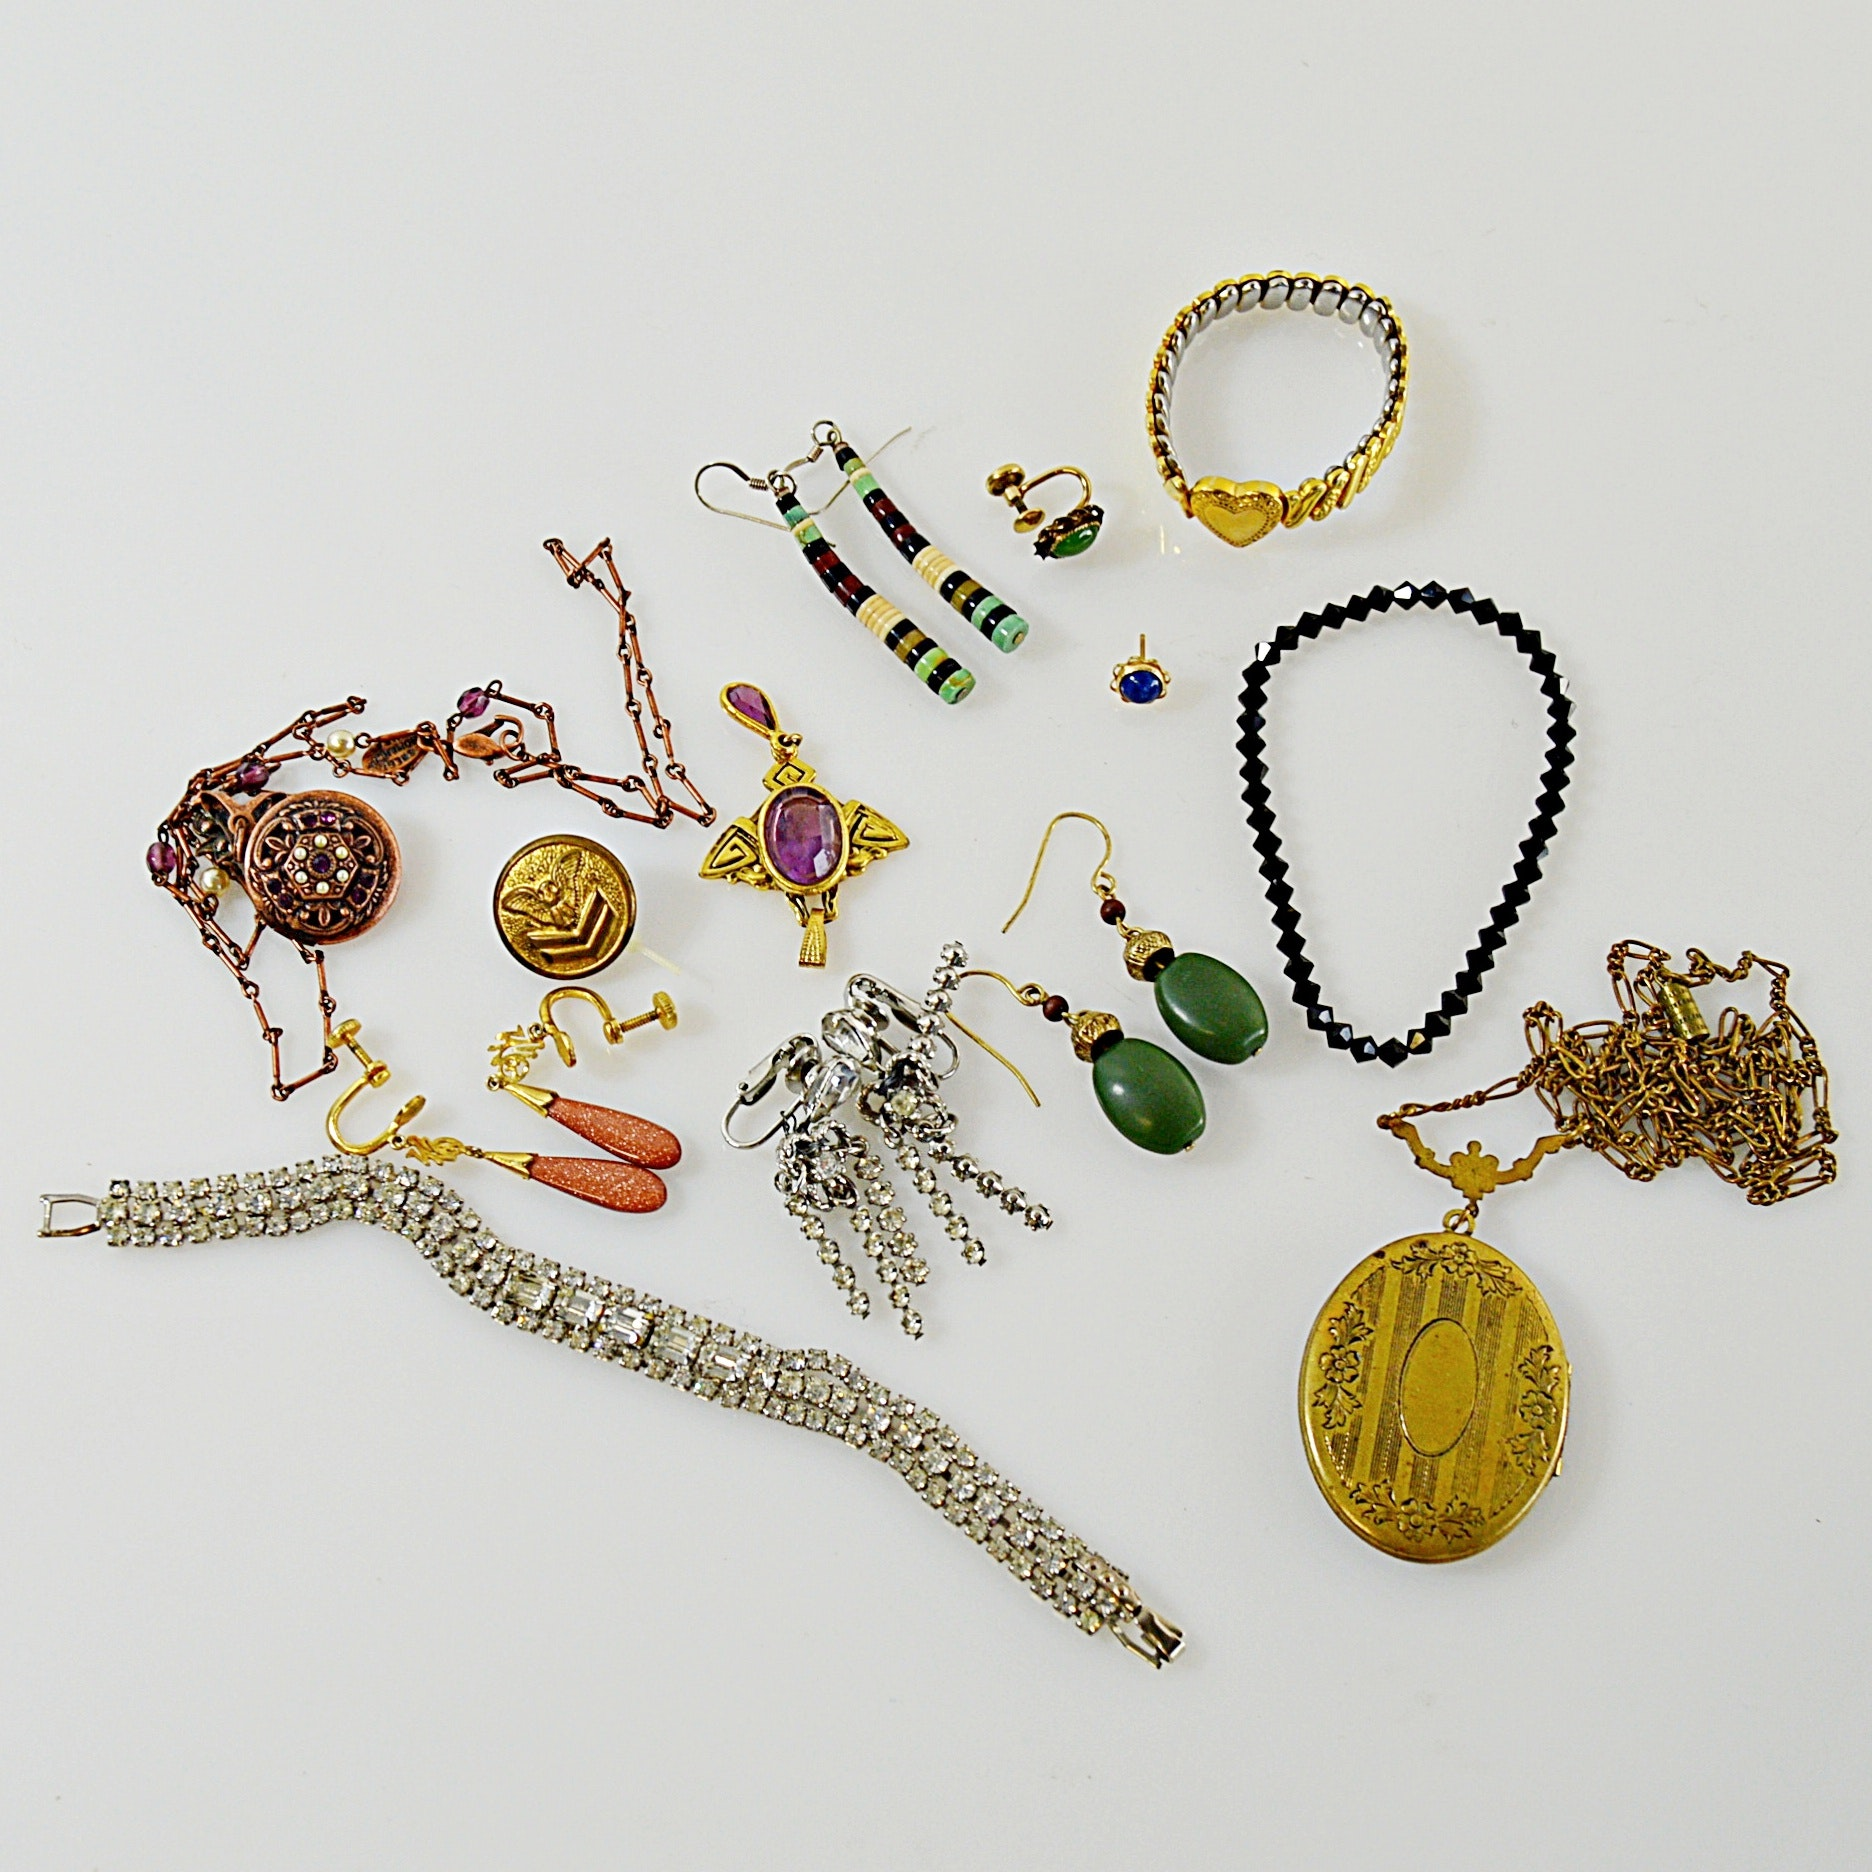 Vintage and Modern Jewelry